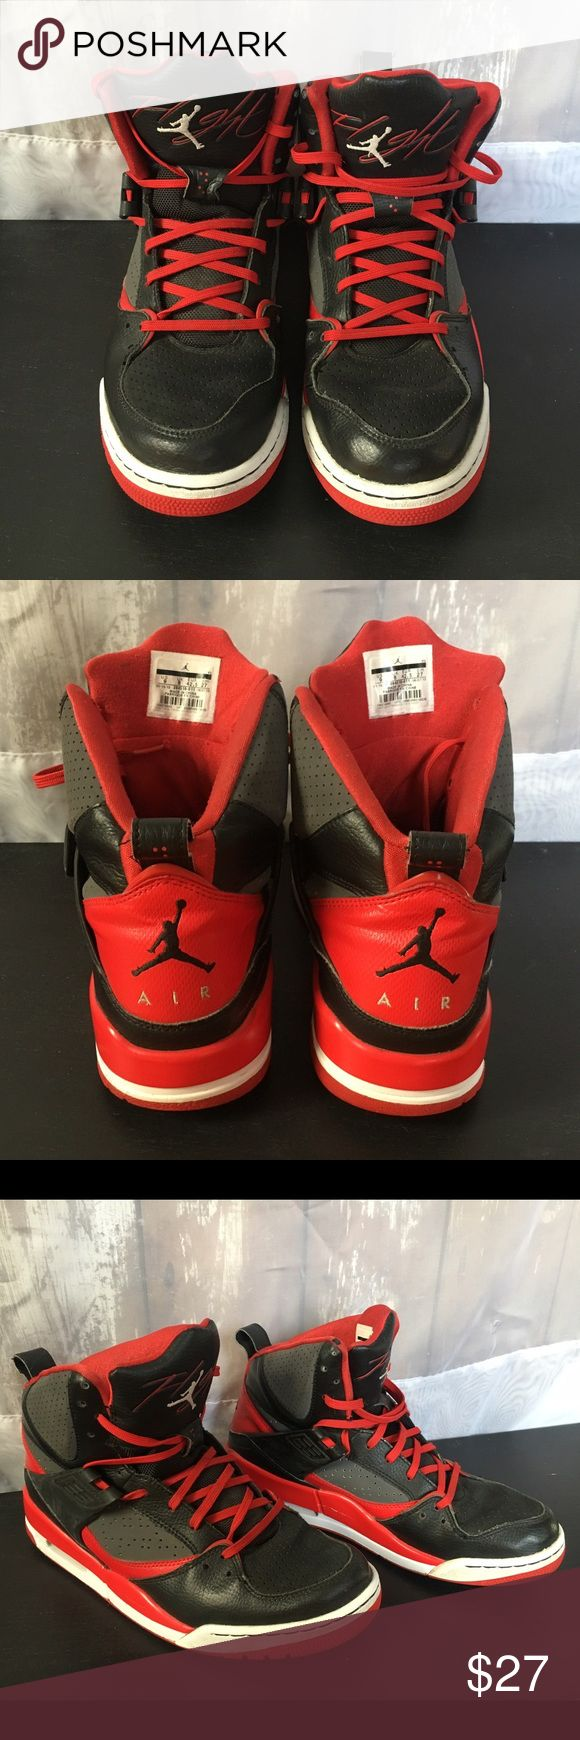 Men's Air Jordan Flight 45 Men's Air Jordan Flight 45 Black and Red. Missing front strap on both. Shoes show minor signs of Wear and tear as seen in pictures. Size 9. Jordan Shoes Athletic Shoes